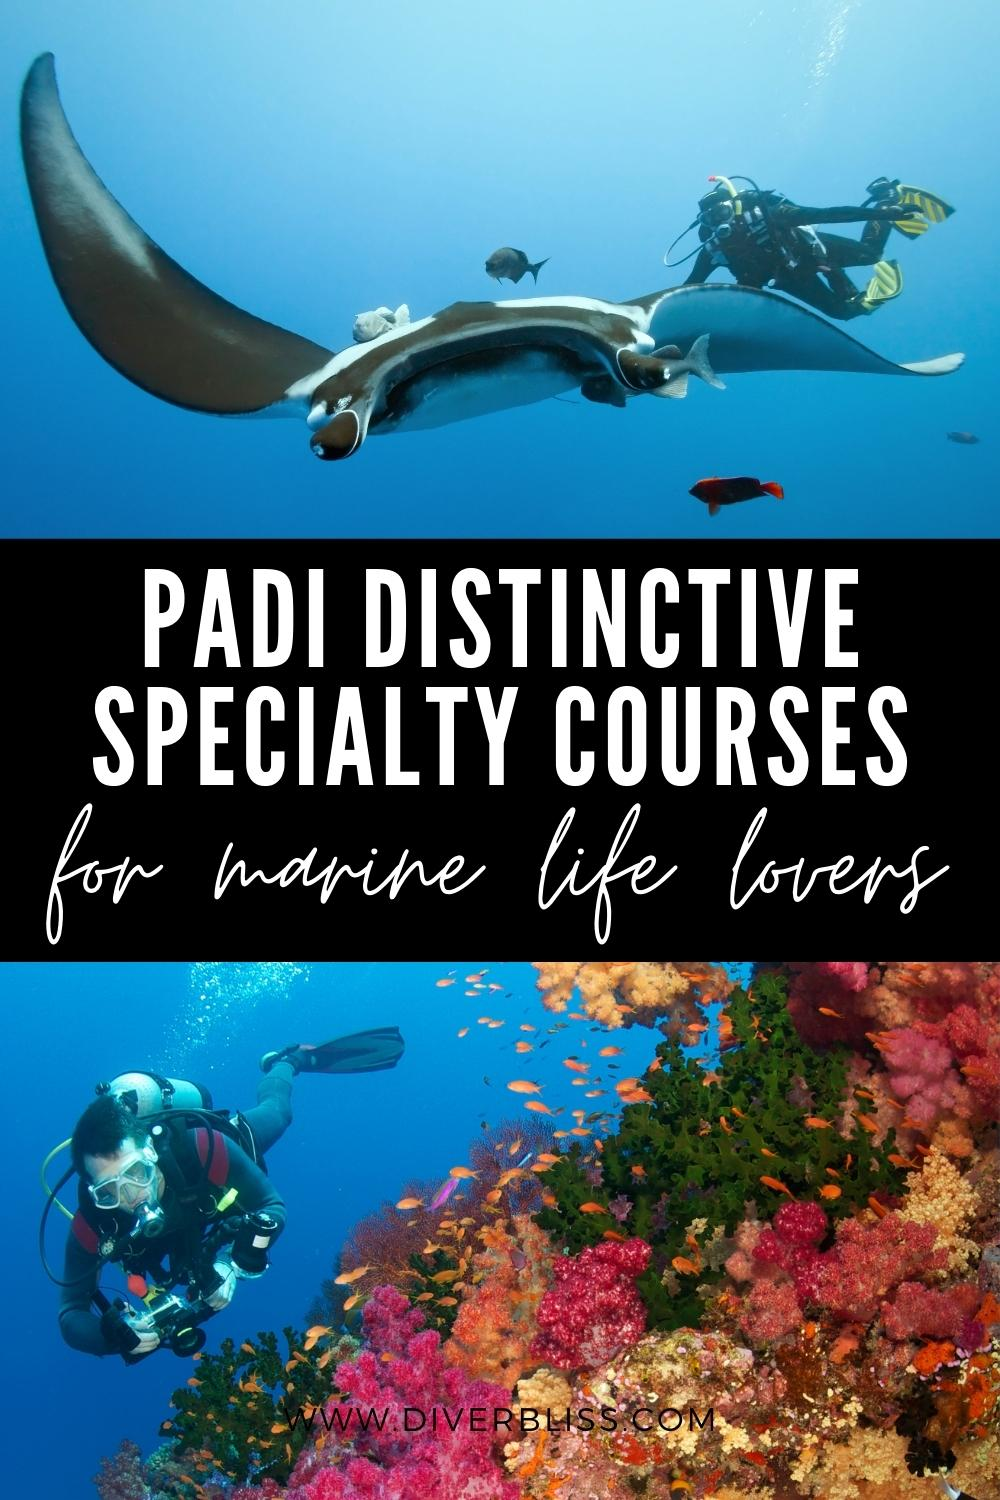 PADI distinctive specialty courses for marine life lovers